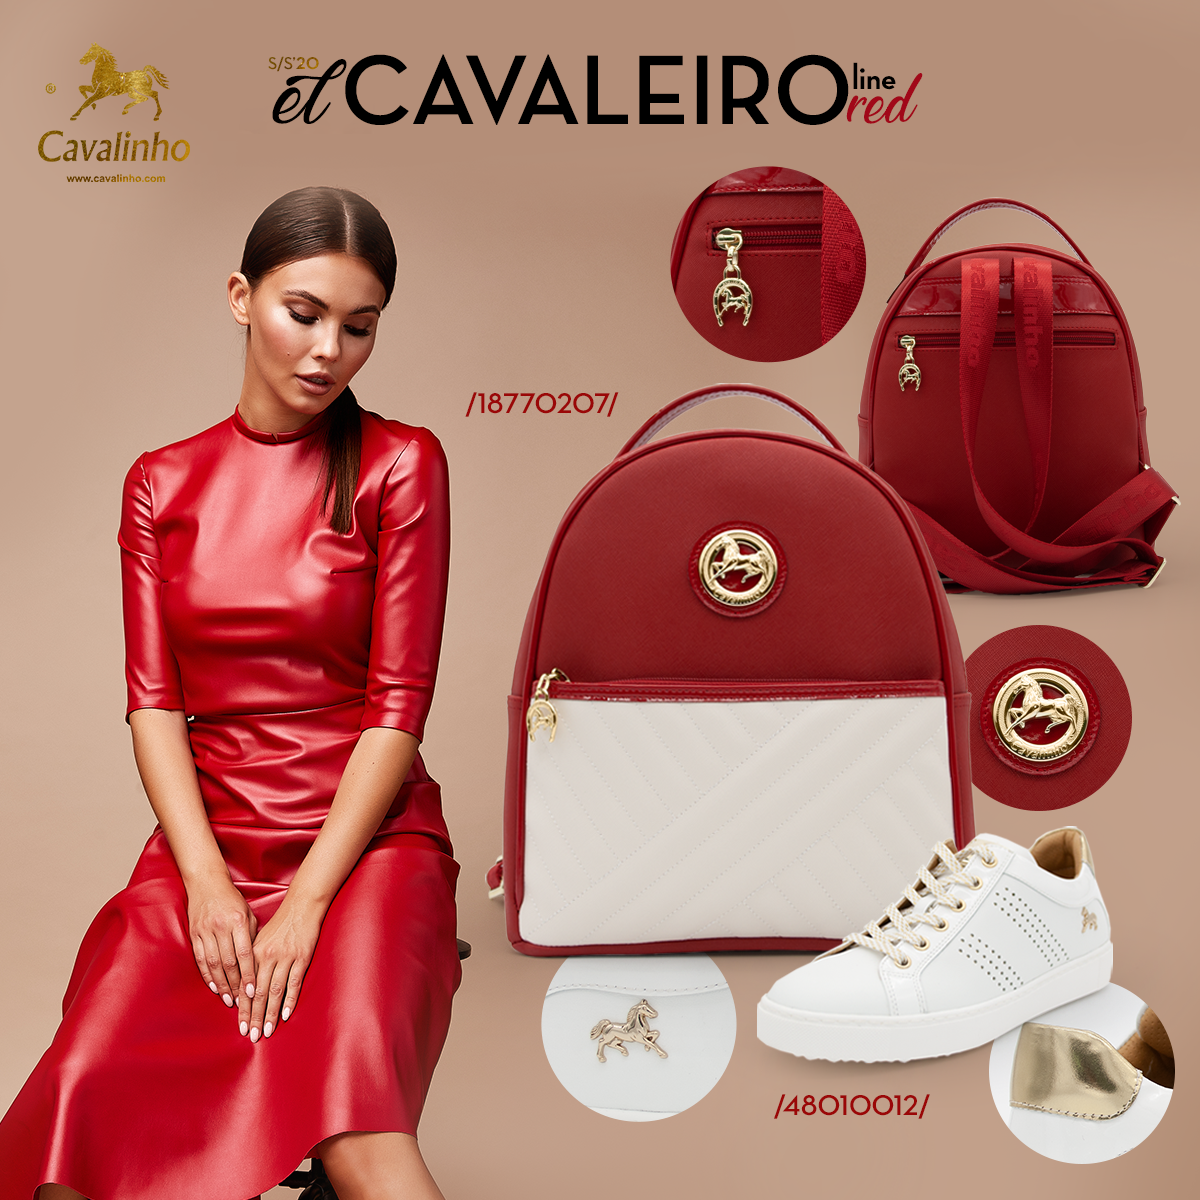 elcavaleiro_red_04